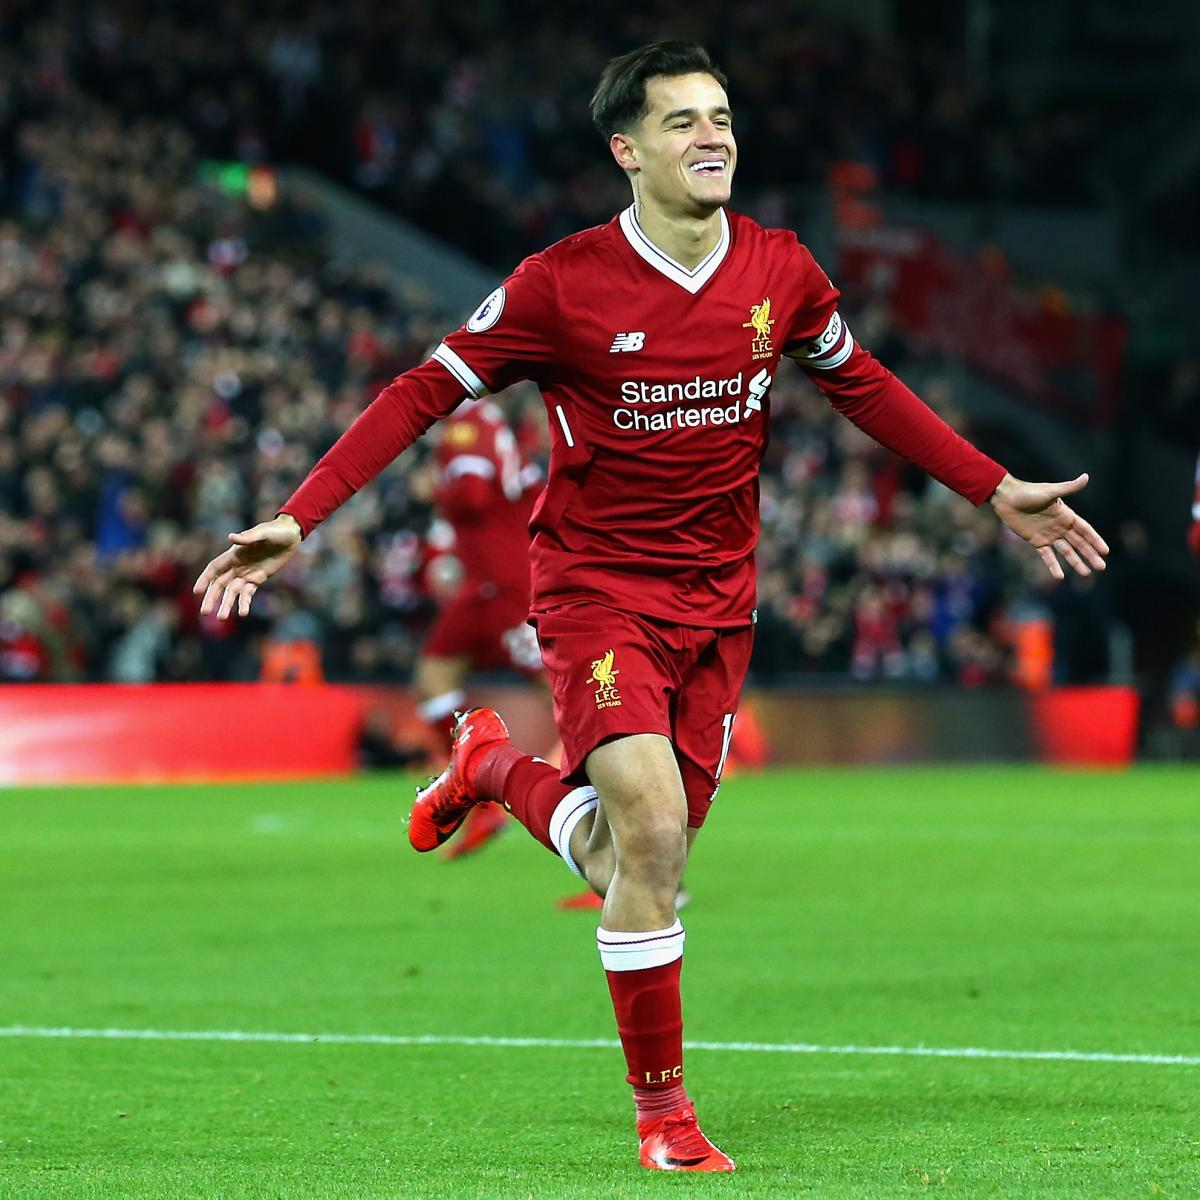 Live Streaming Soccer News Liverpool Vs Benfica Live: Liverpool Vs. Leicester City: Preview, Live Stream And TV